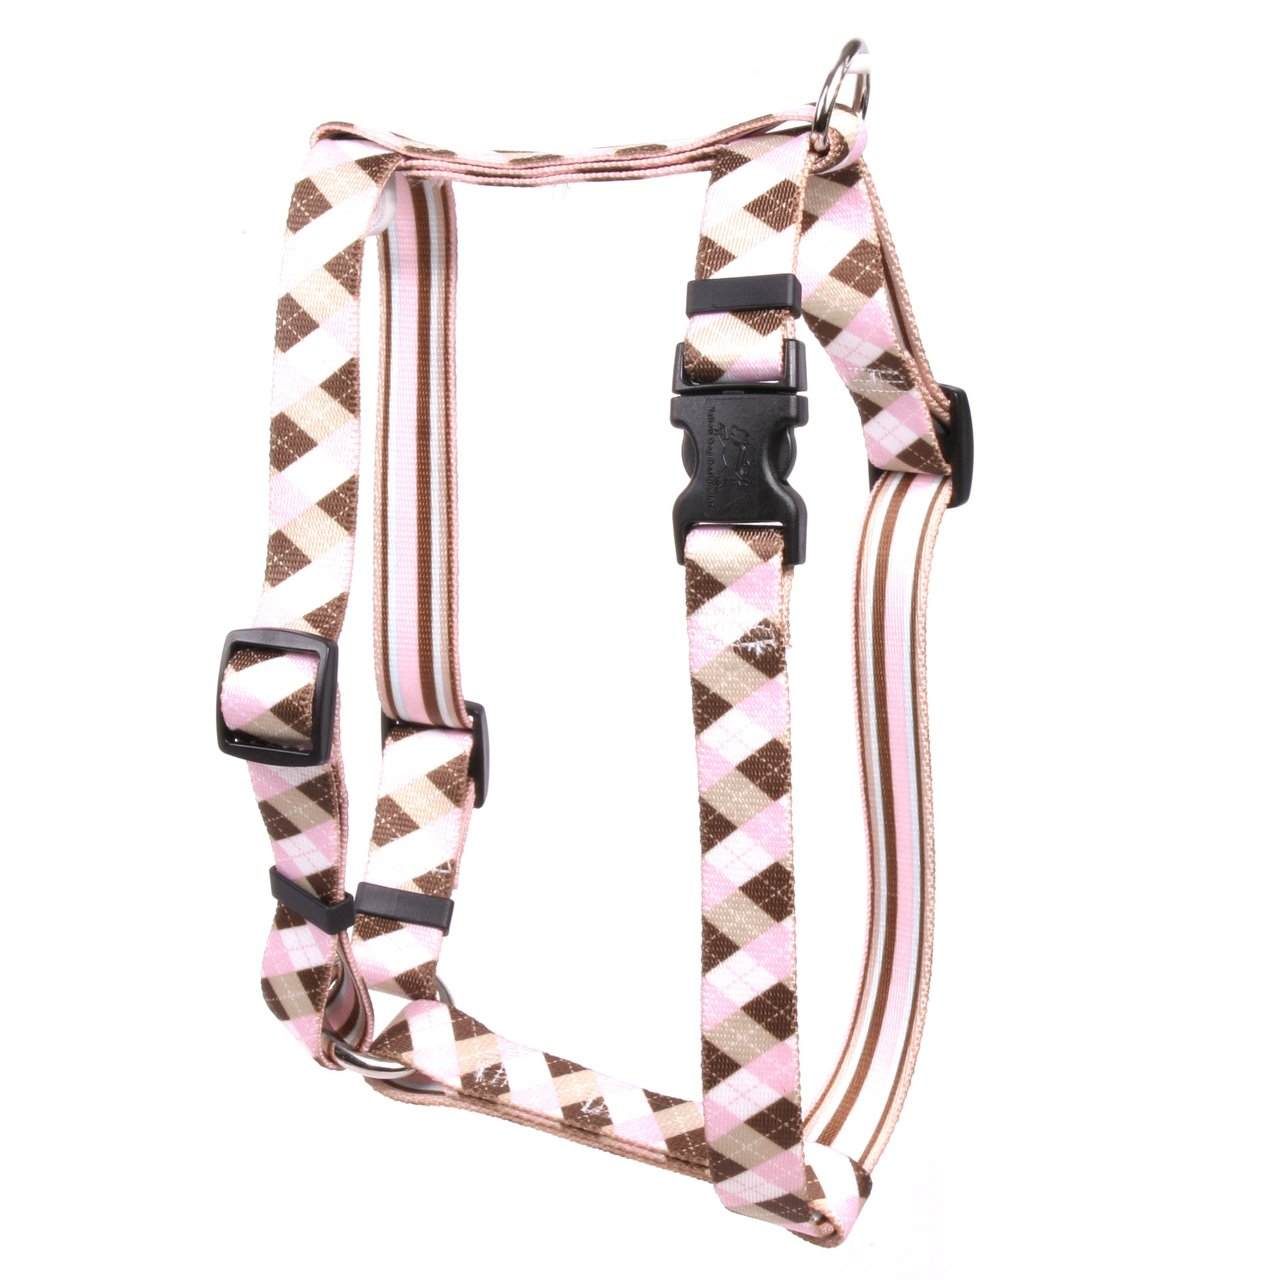 Yellow Dog Design Pink Brown Argyle Roman H Dog Harness, Small/Medium-3/4 Wide fits Chest of 14 to 20'' by Yellow Dog Design